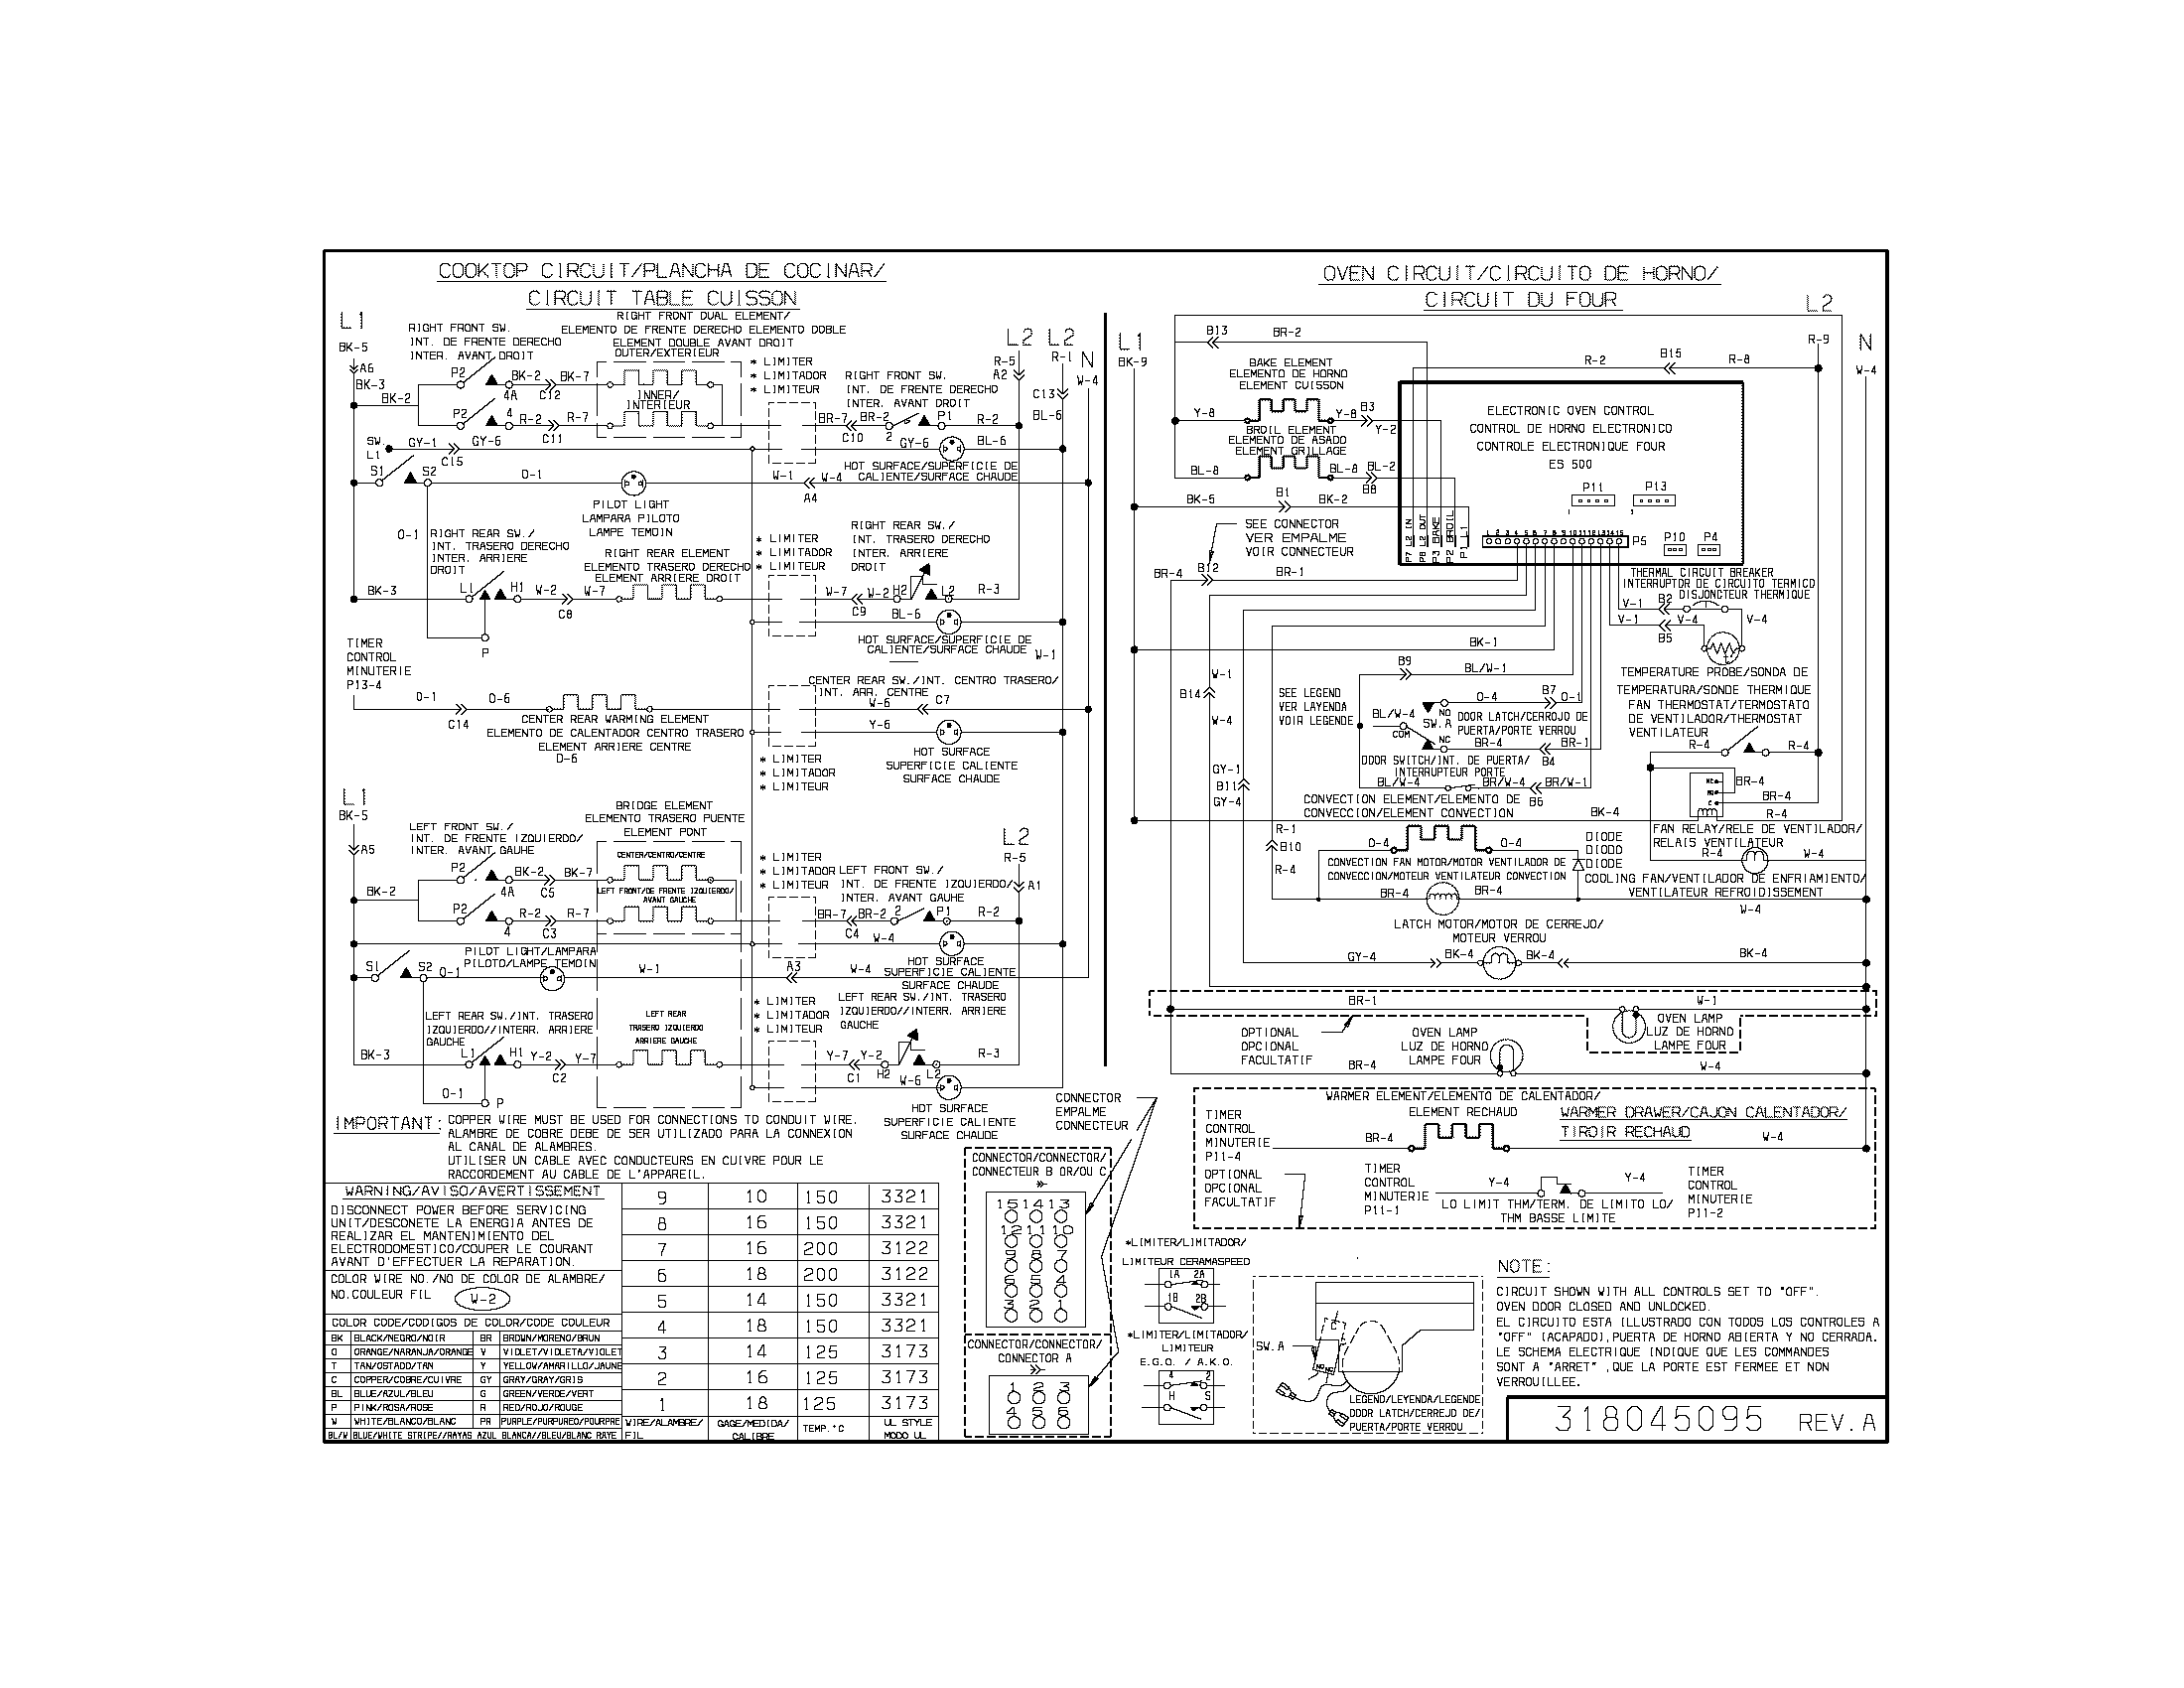 Induction Cooktop Wiring Diagram 32 Images Free Download Inf 1 2 Diagrams Parts Frigidaire Cpes389cc2 Range Timer Stove Clocks And Appliance Timers